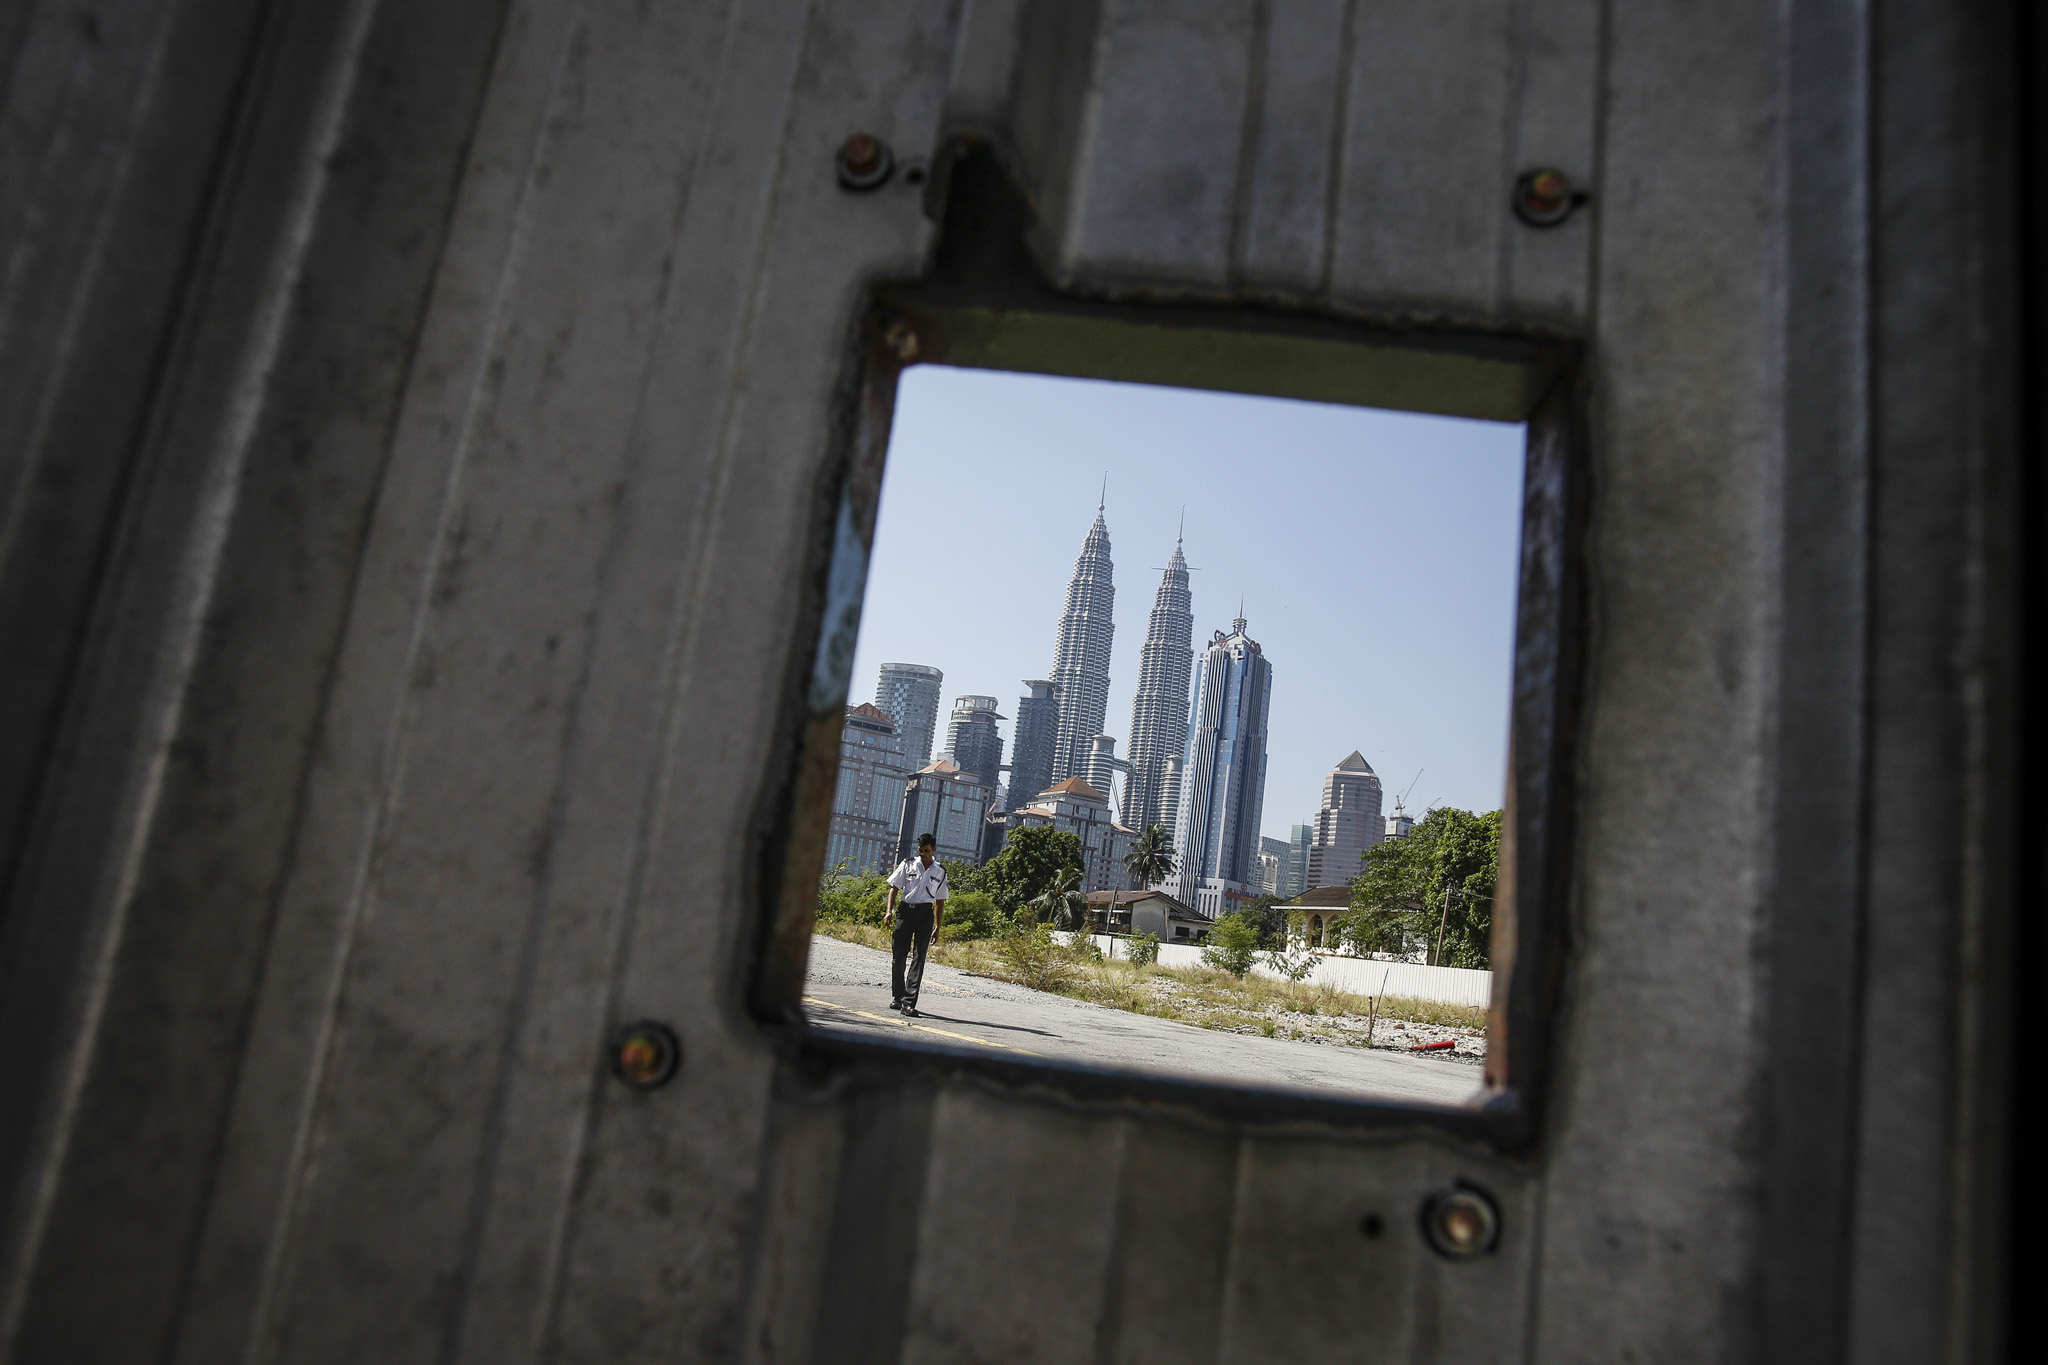 A security guard patrols at a construction site in front of Petronas Twin Tower